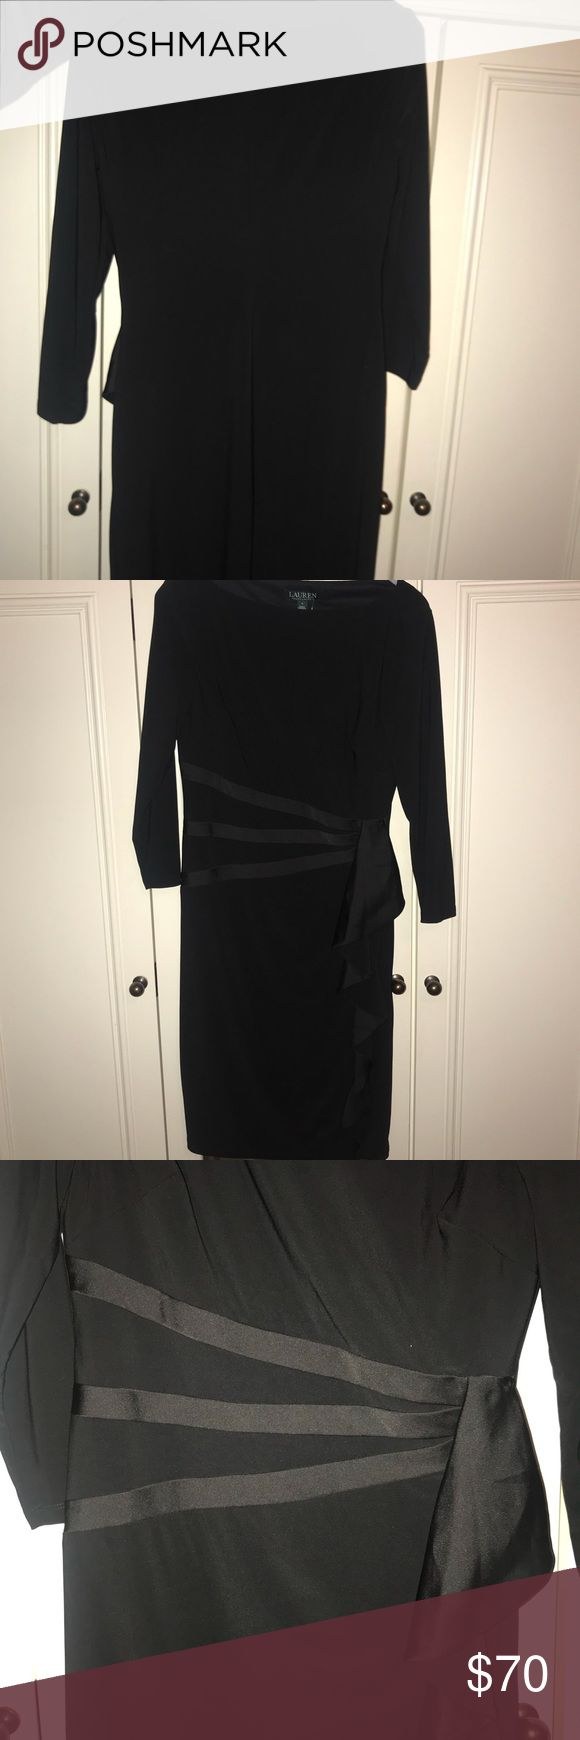 Ralph Lauren Tight black dress Black dress, about knee length with a bow decoration tightening the dress and adding design around the stomach. Sleeves are about elbow length, dress is soft and thin. Ralph Lauren Dresses Long Sleeve